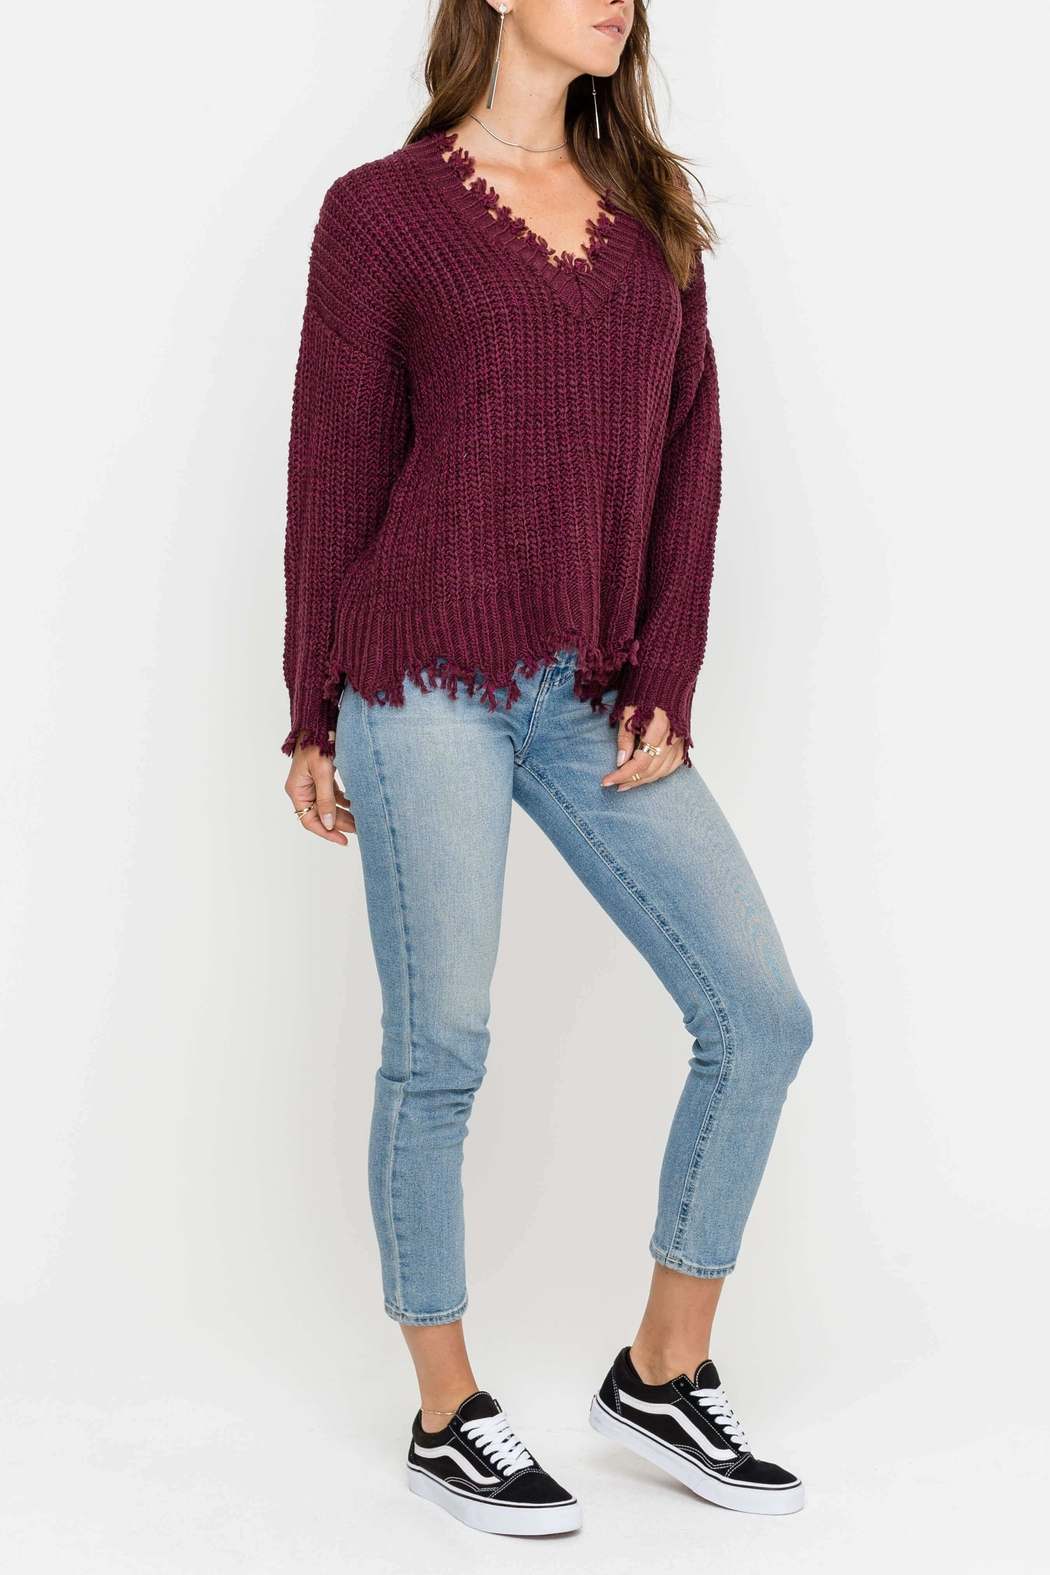 Lush Hem Destroyed Sweater - Main Image